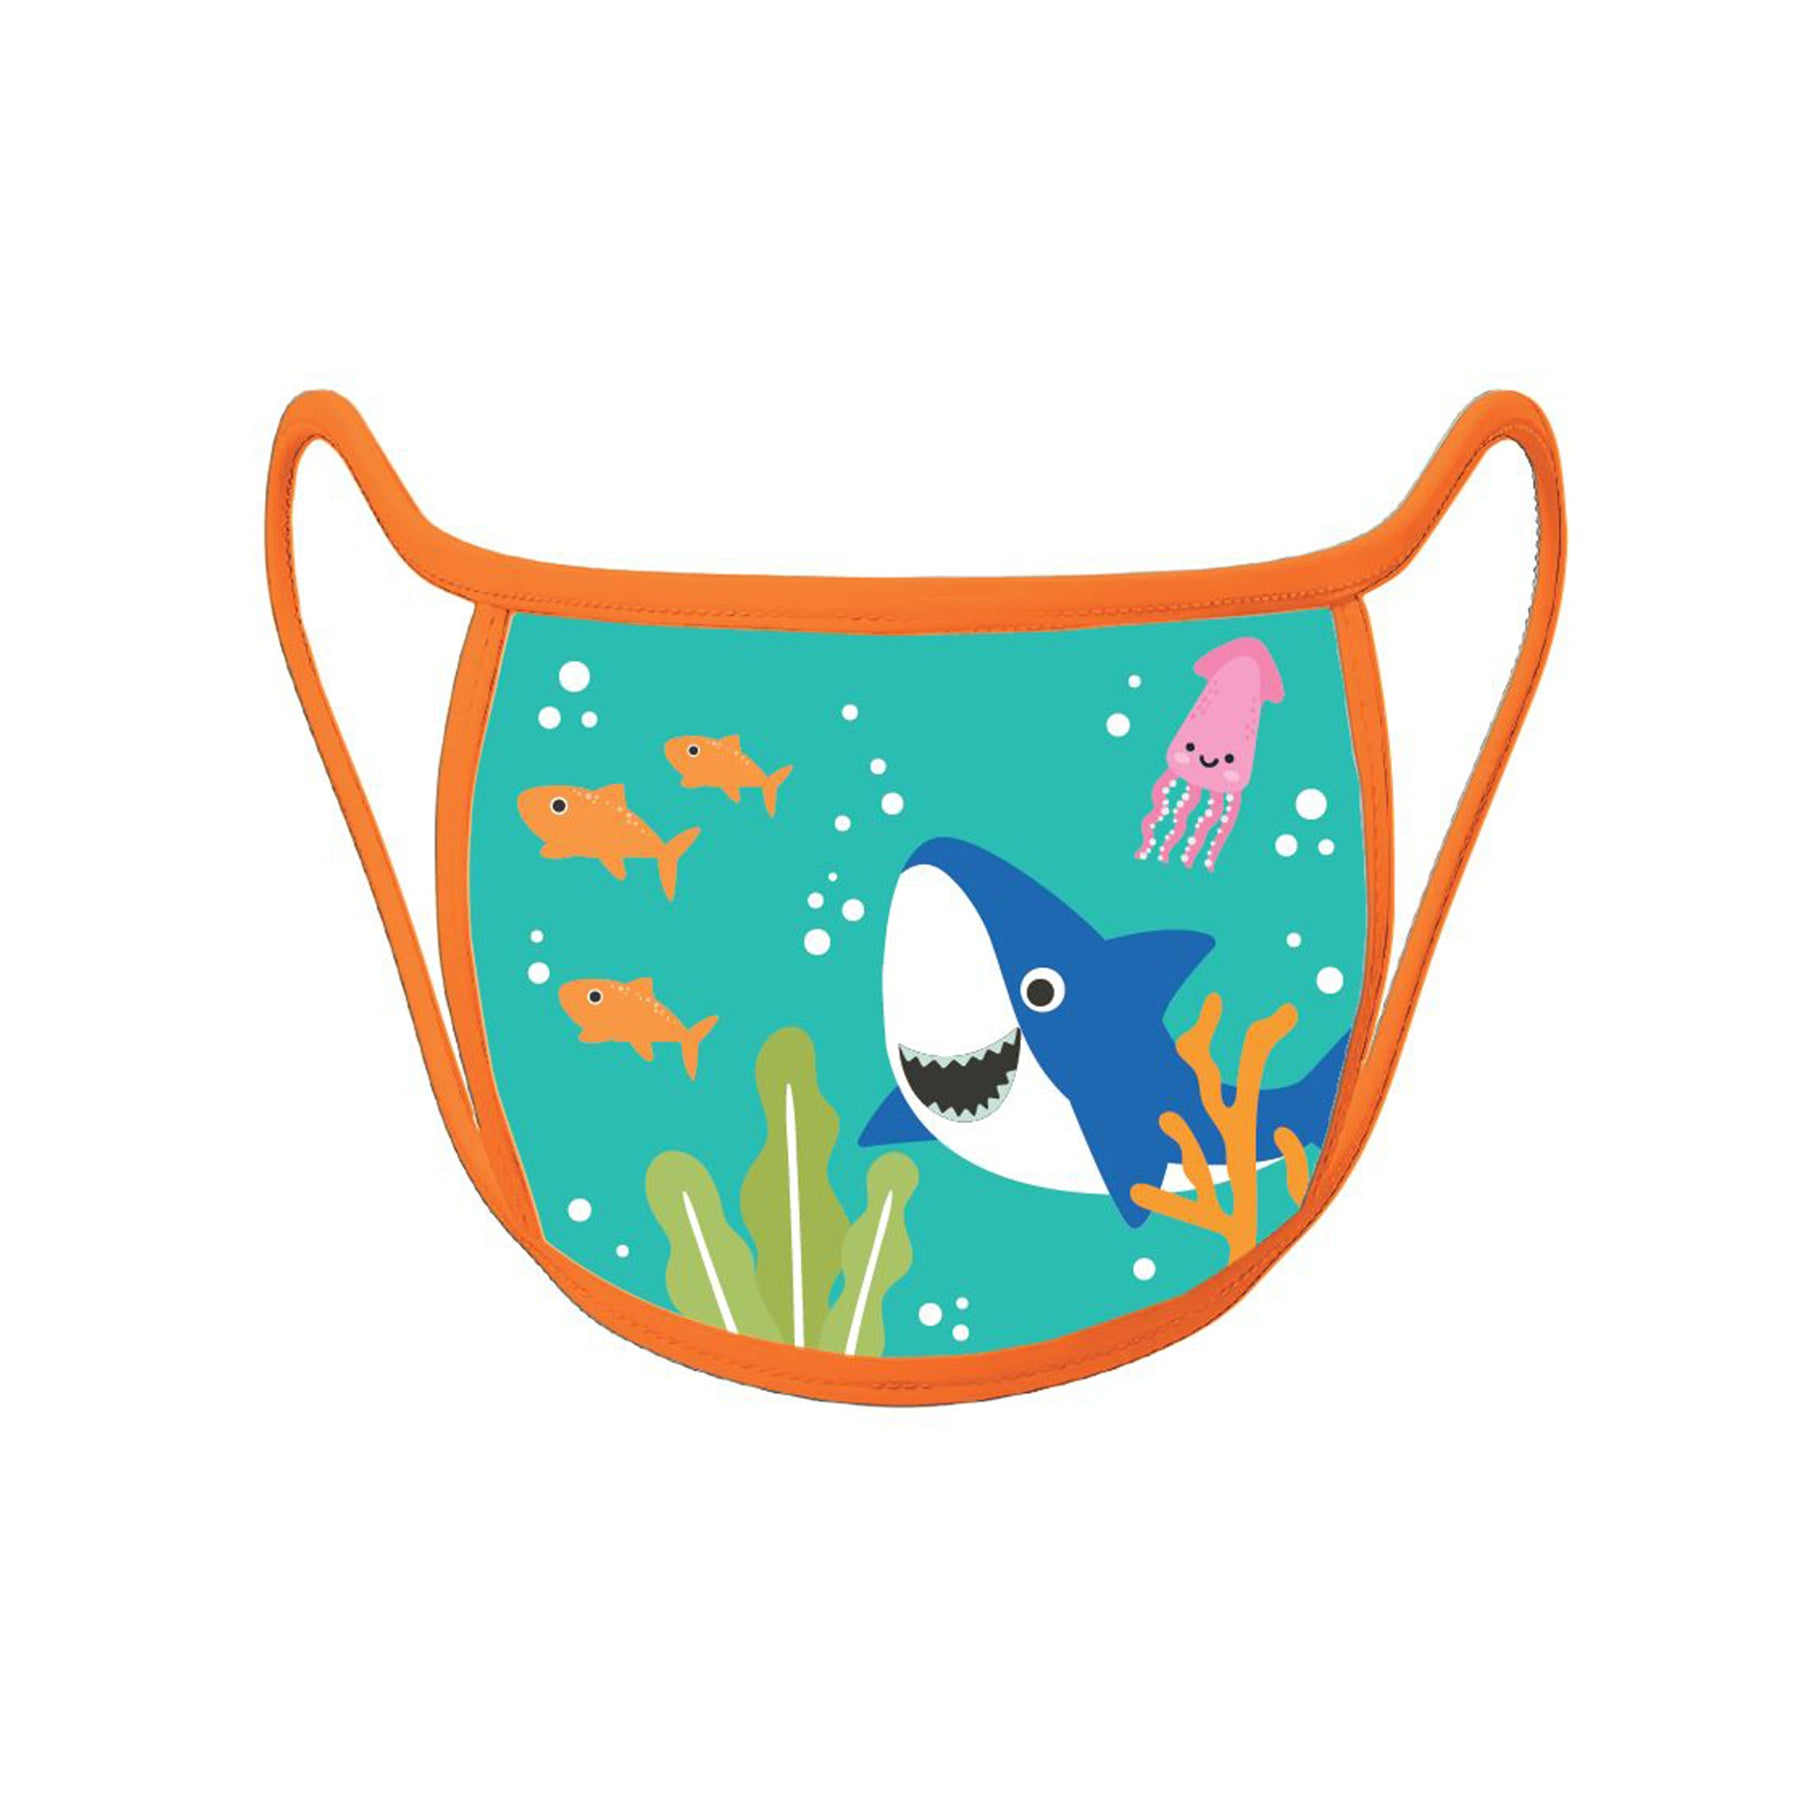 Re-useable Handmade Cloth Face Covering Cute Little Shark Design